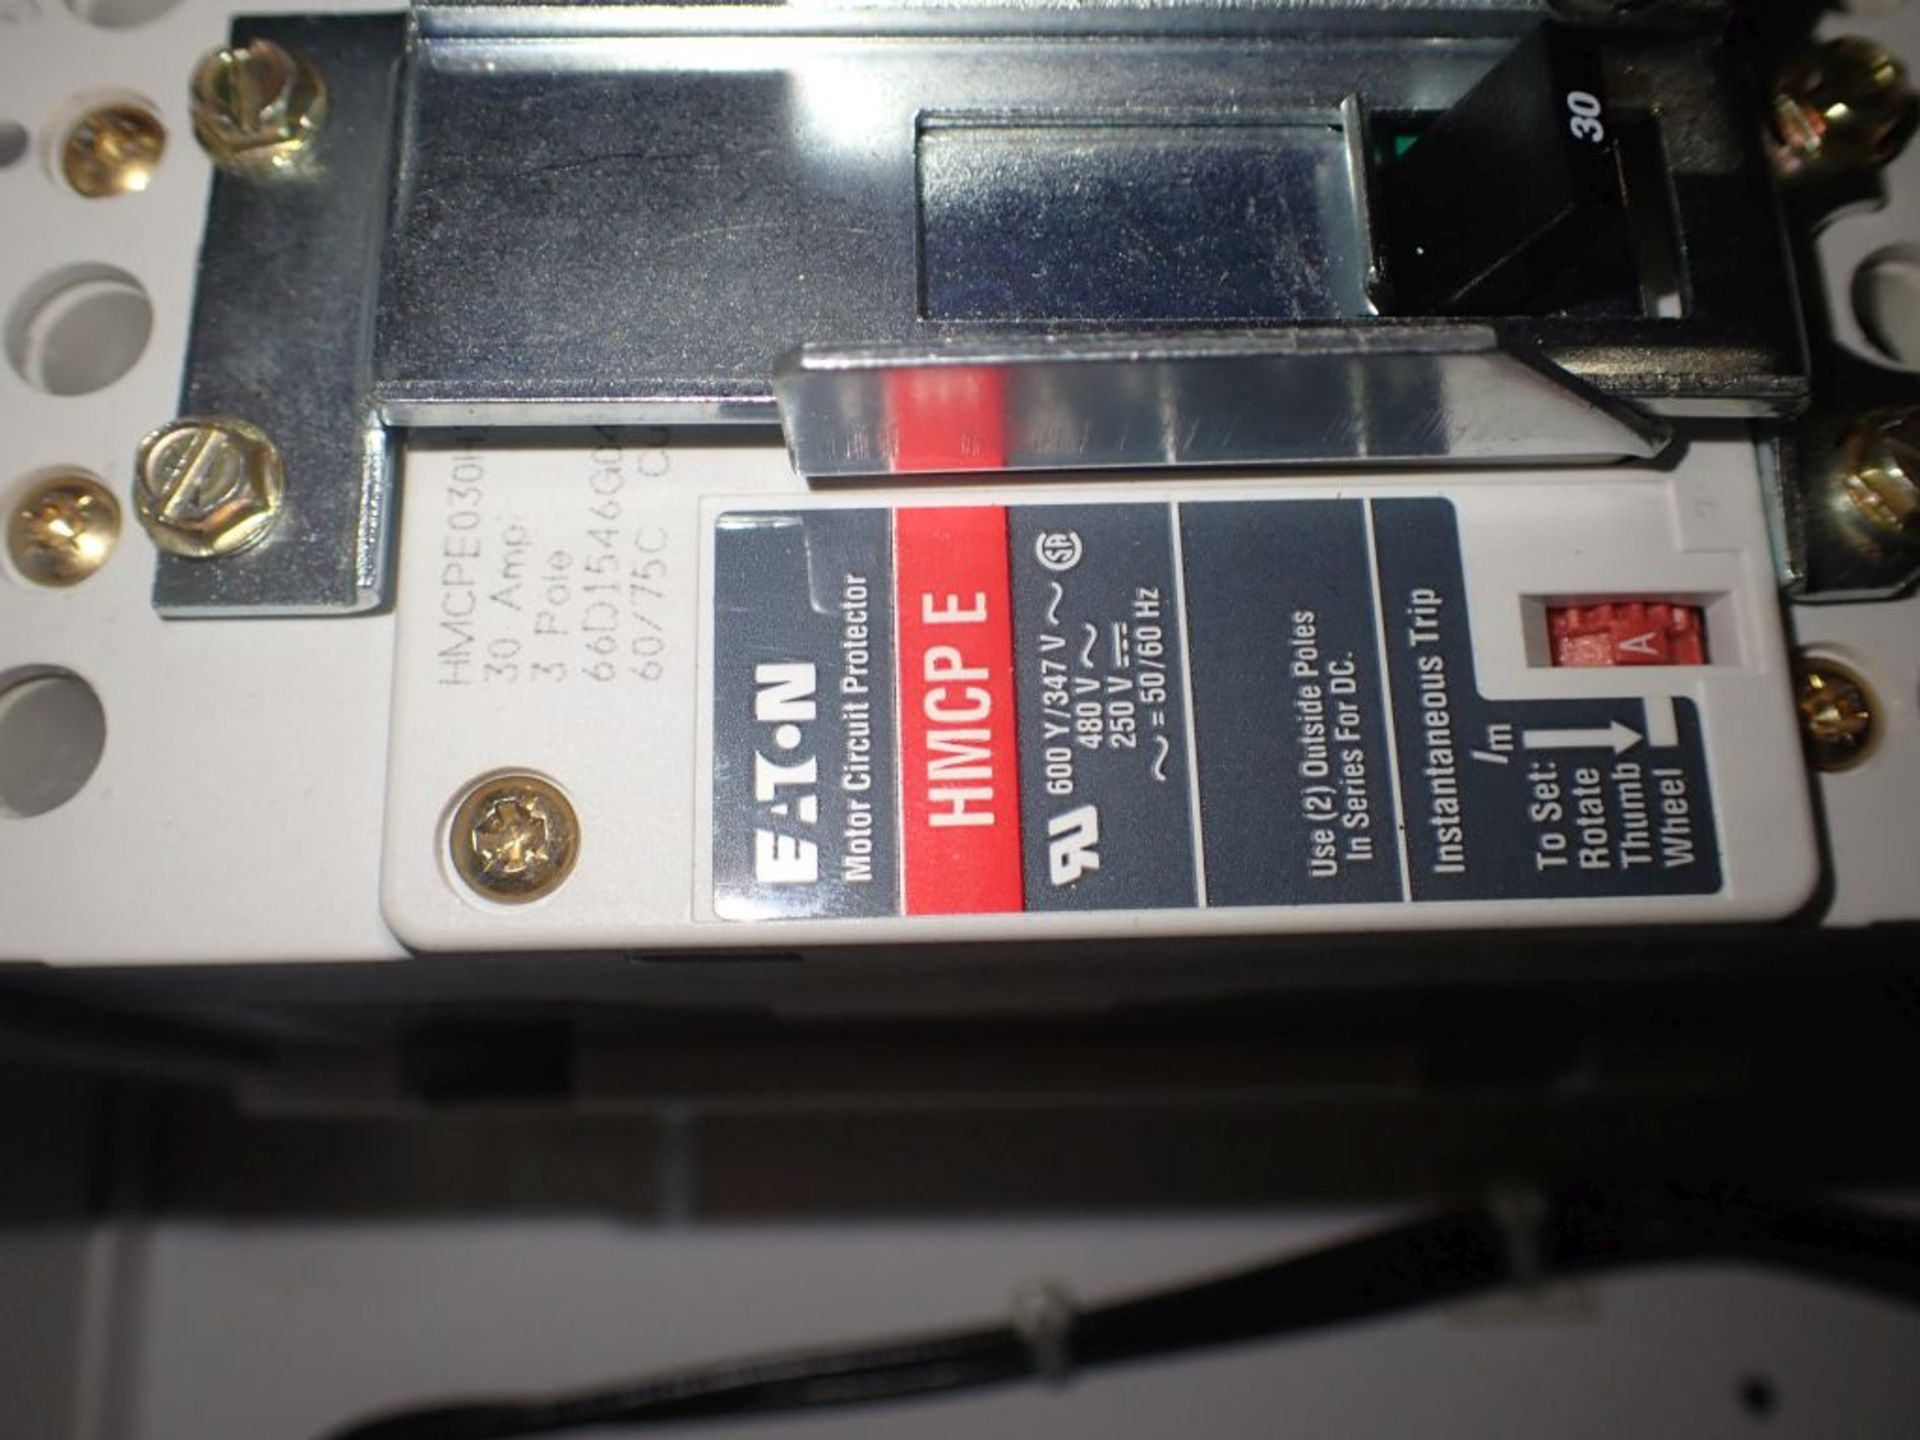 Eaton Freedom 2100 Series Motor Control Center | (2) F206-7A-10HP; (3) F206-15A-10HP; (1) FDRB-100A; - Image 17 of 87